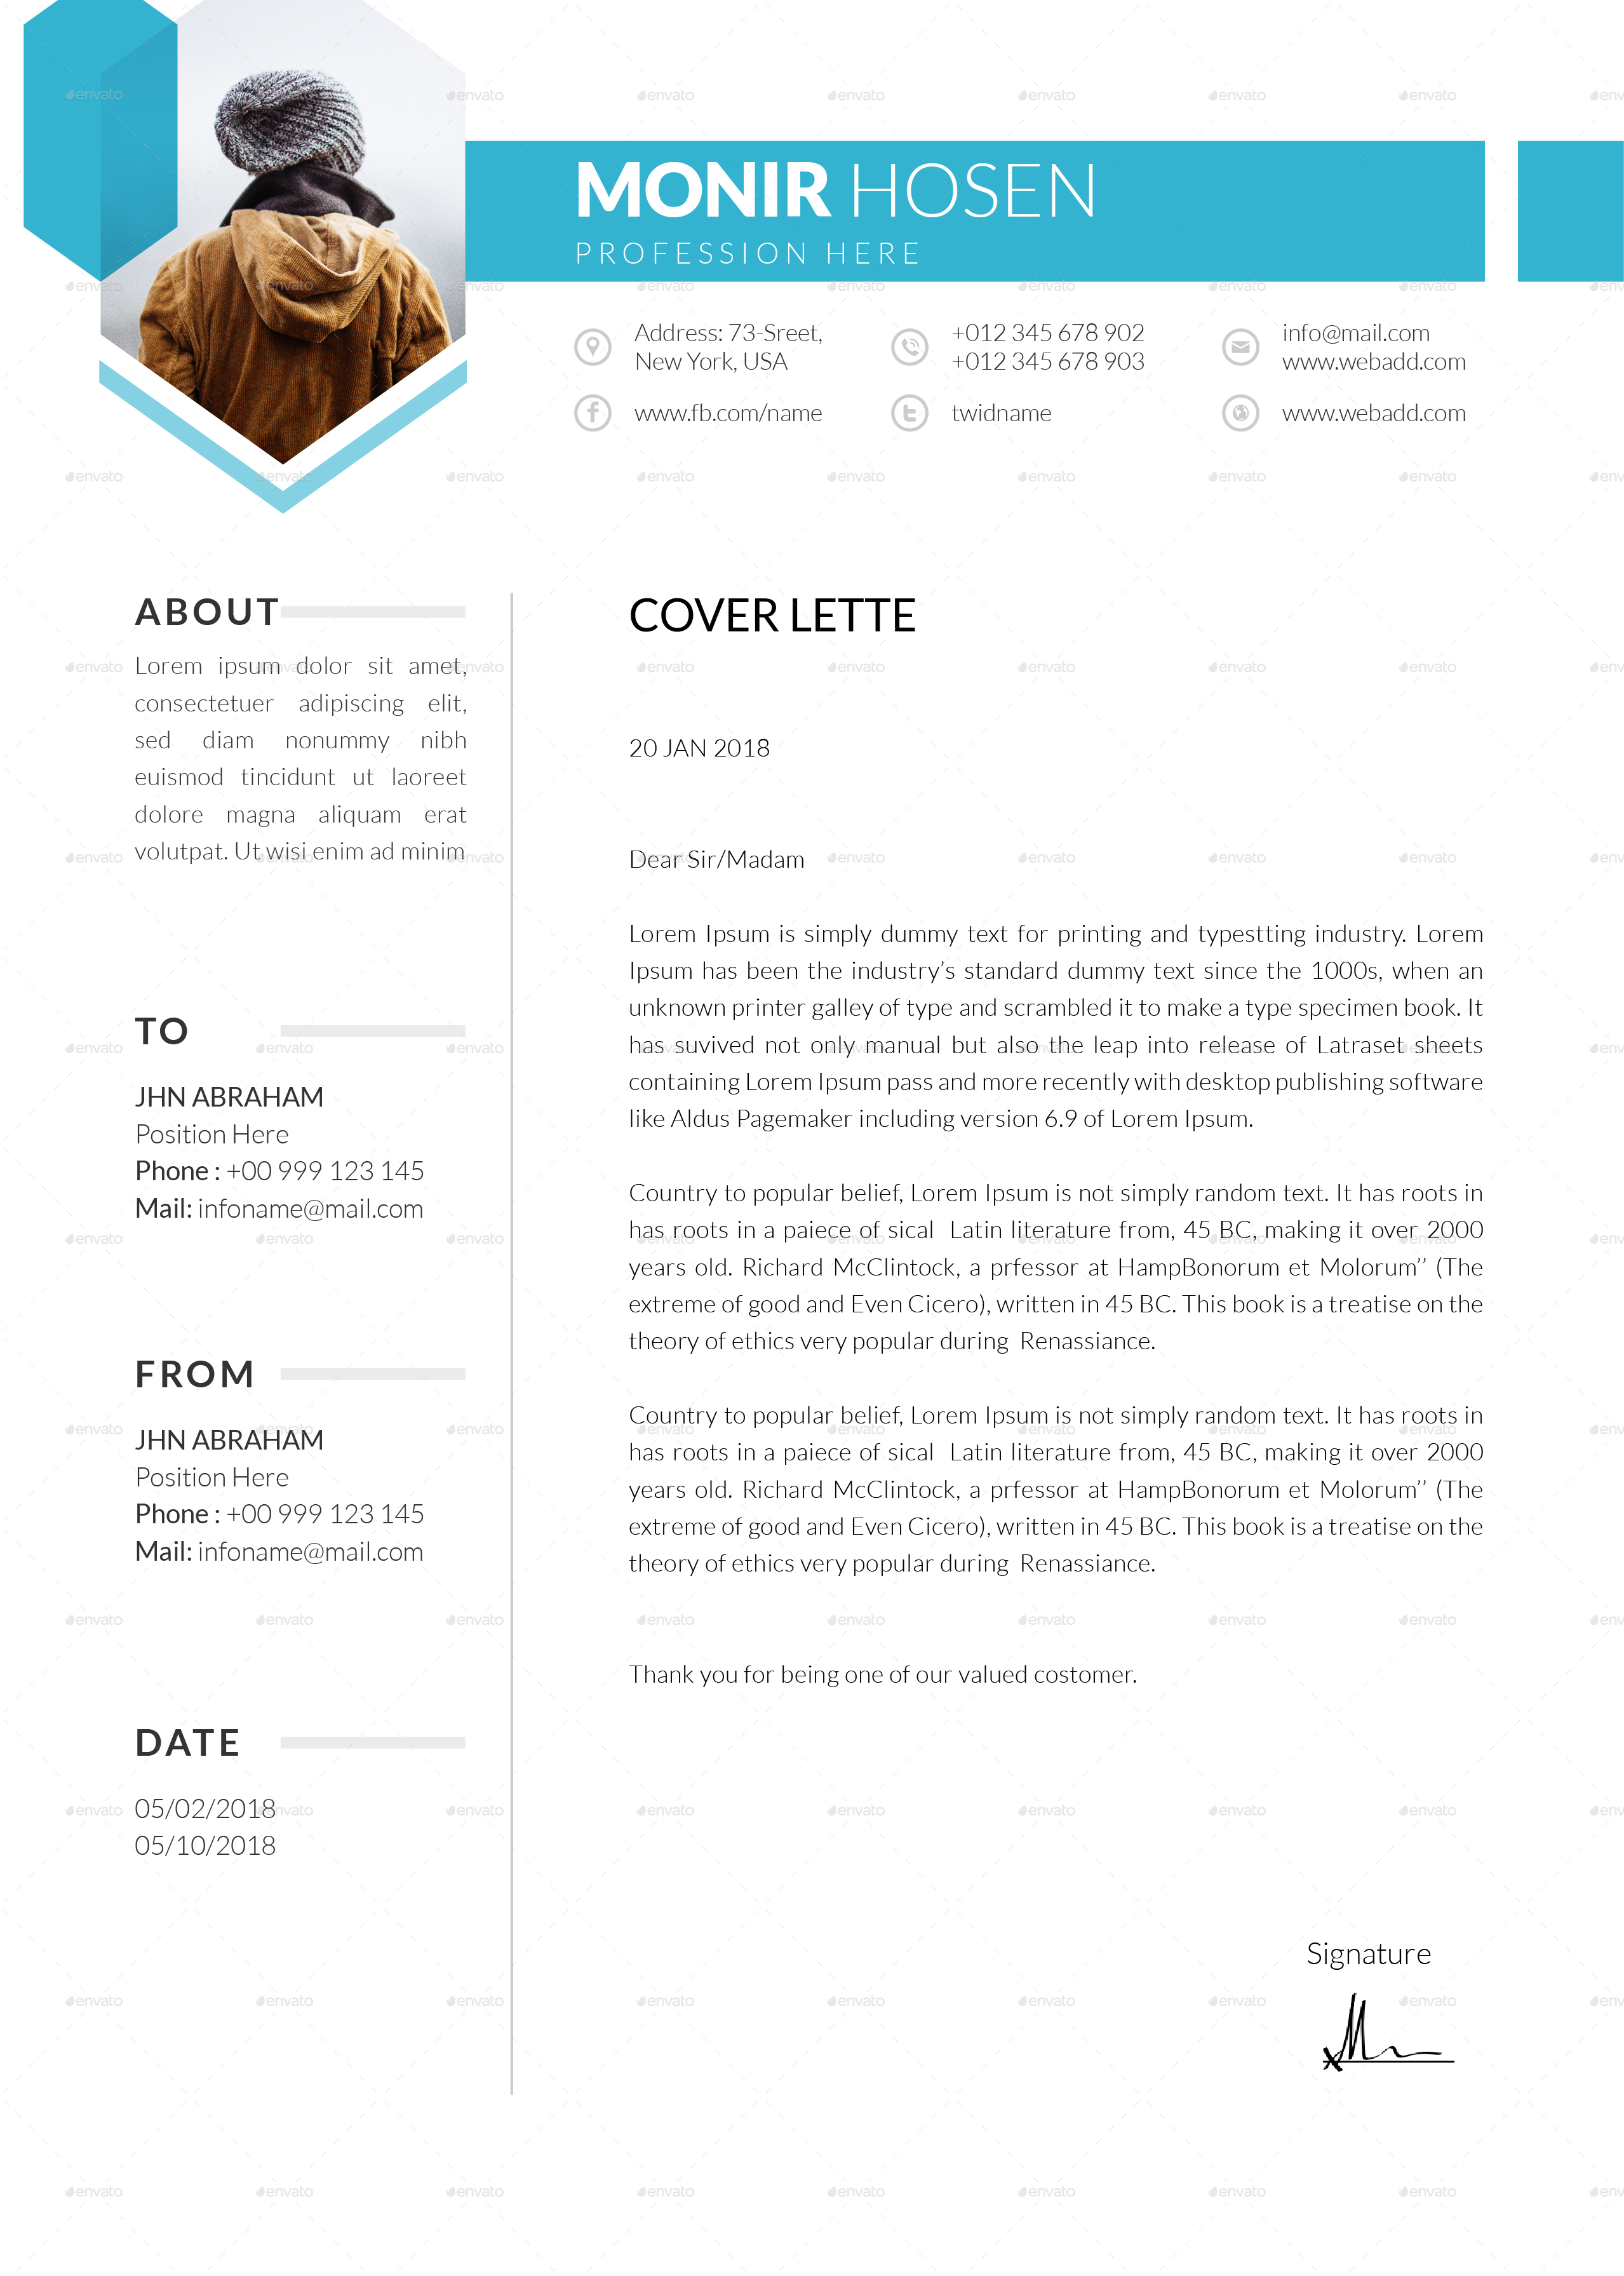 74+ FREE PSD CV/ RESUME TEMPLATES + COVER LETTERS TO ...